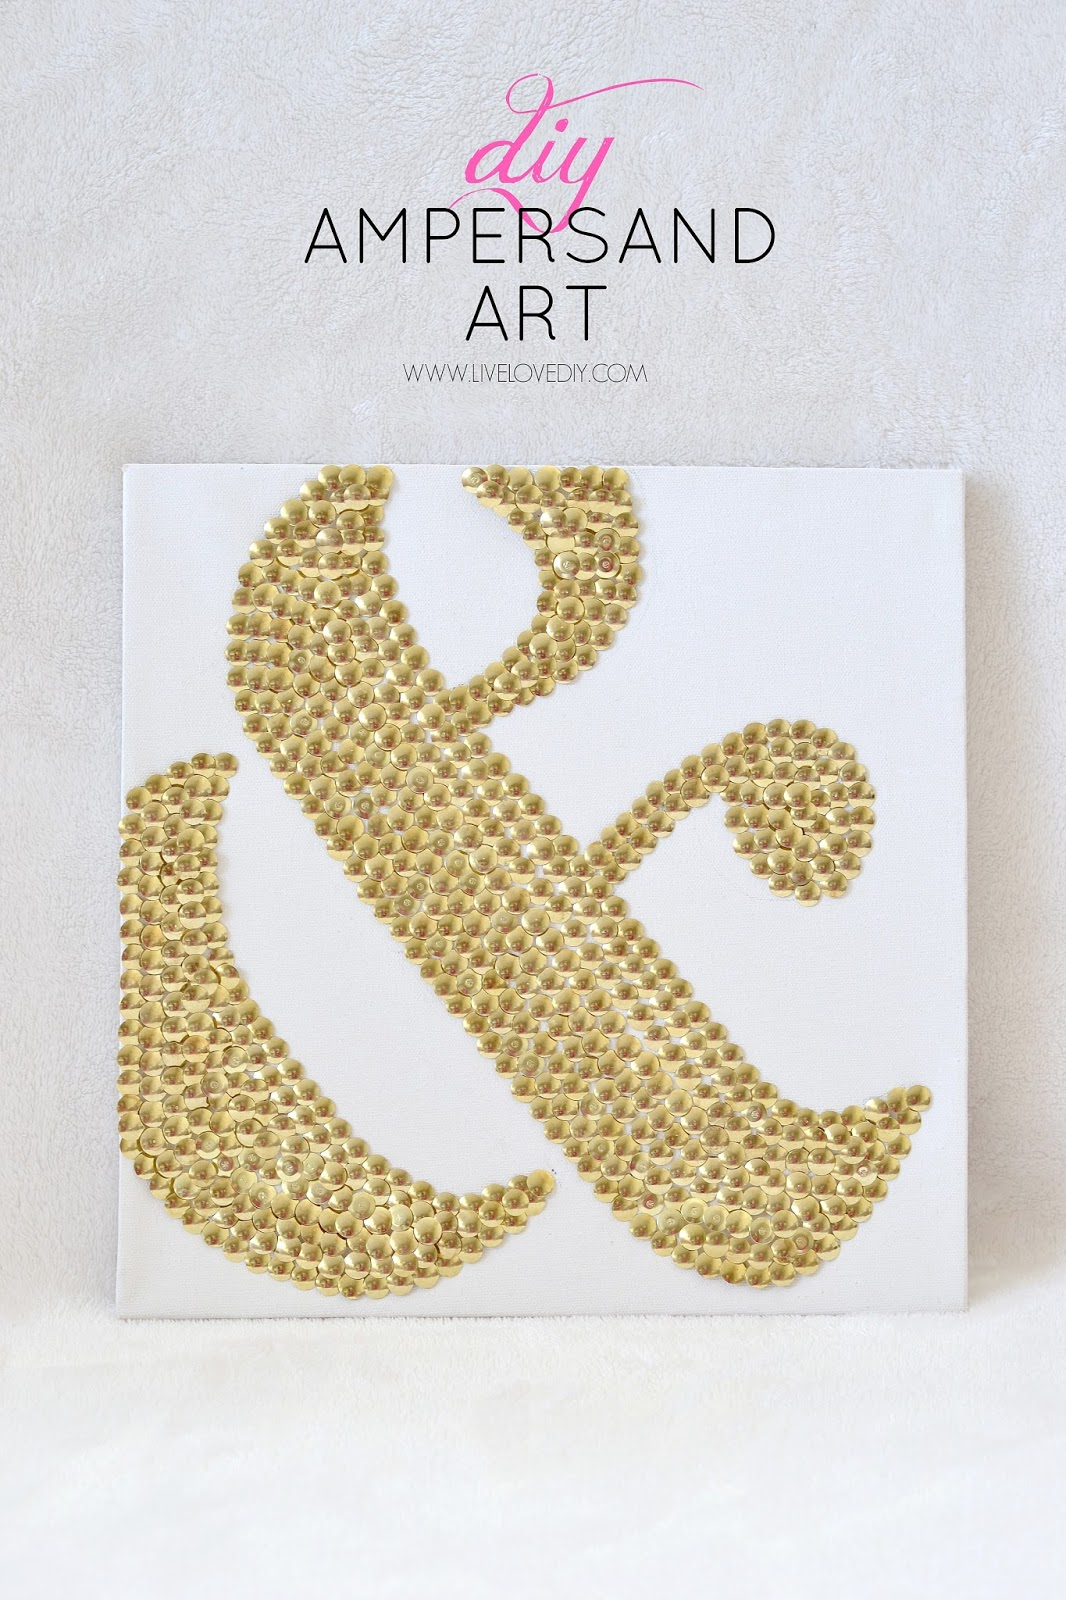 LiveLoveDIY: How To Make DIY Ampersand Art Using Thumbtacks